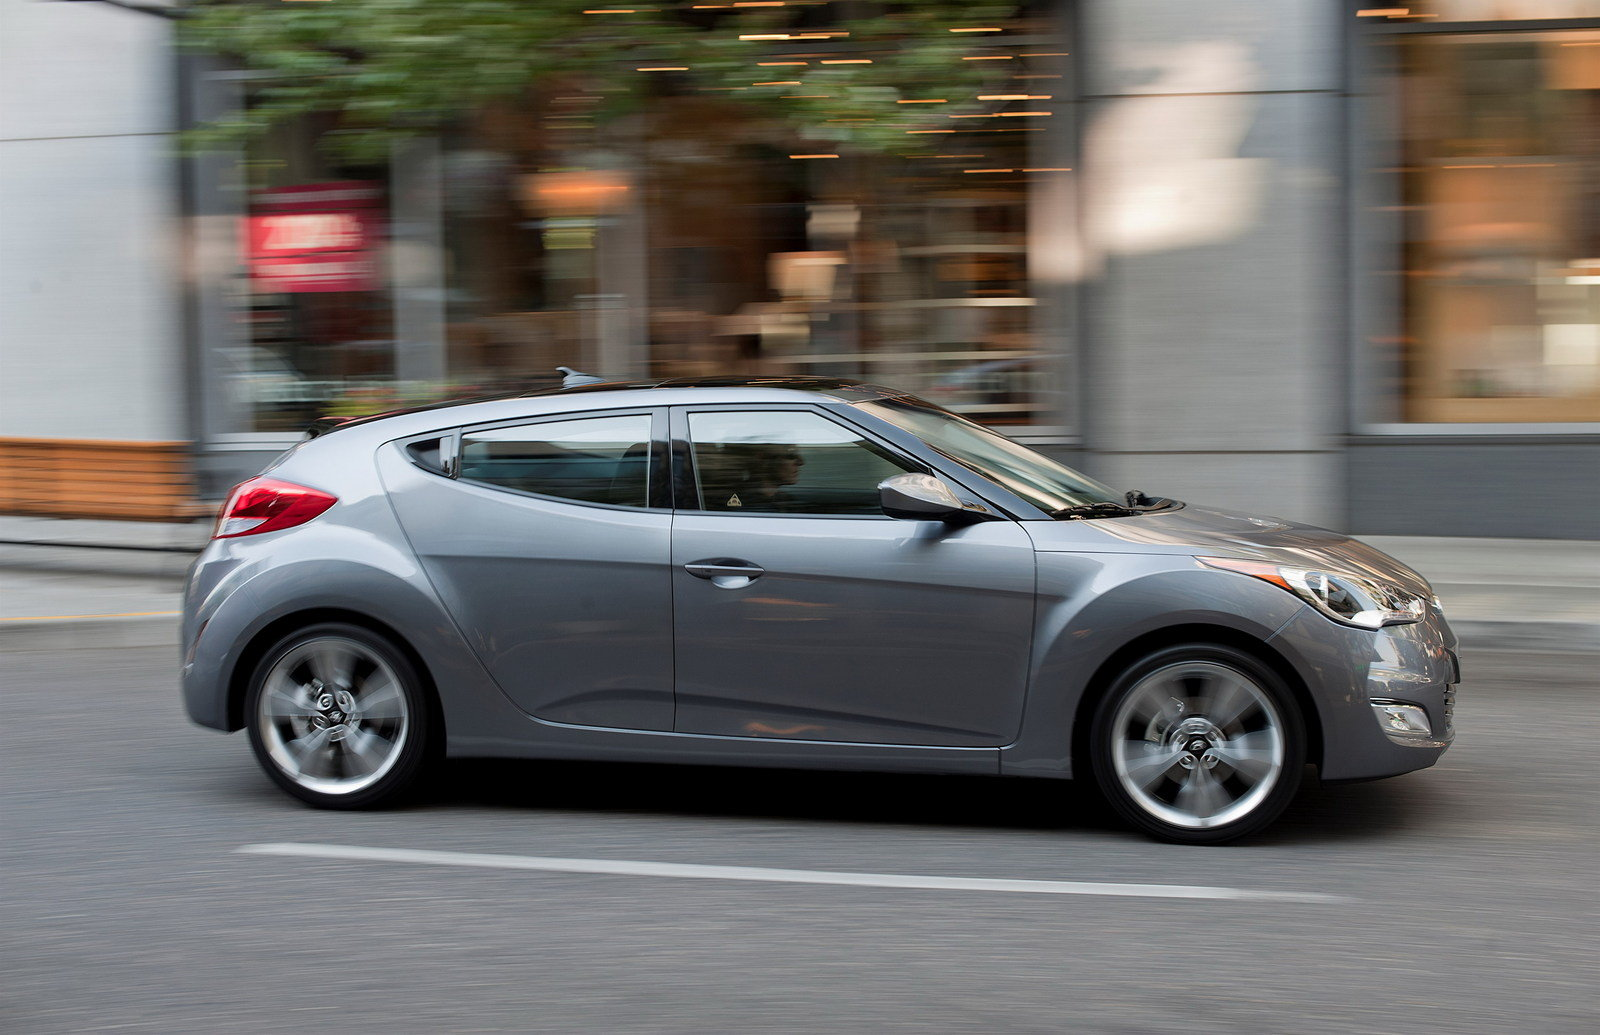 2014 hyundai veloster picture 540452 car review top speed. Black Bedroom Furniture Sets. Home Design Ideas